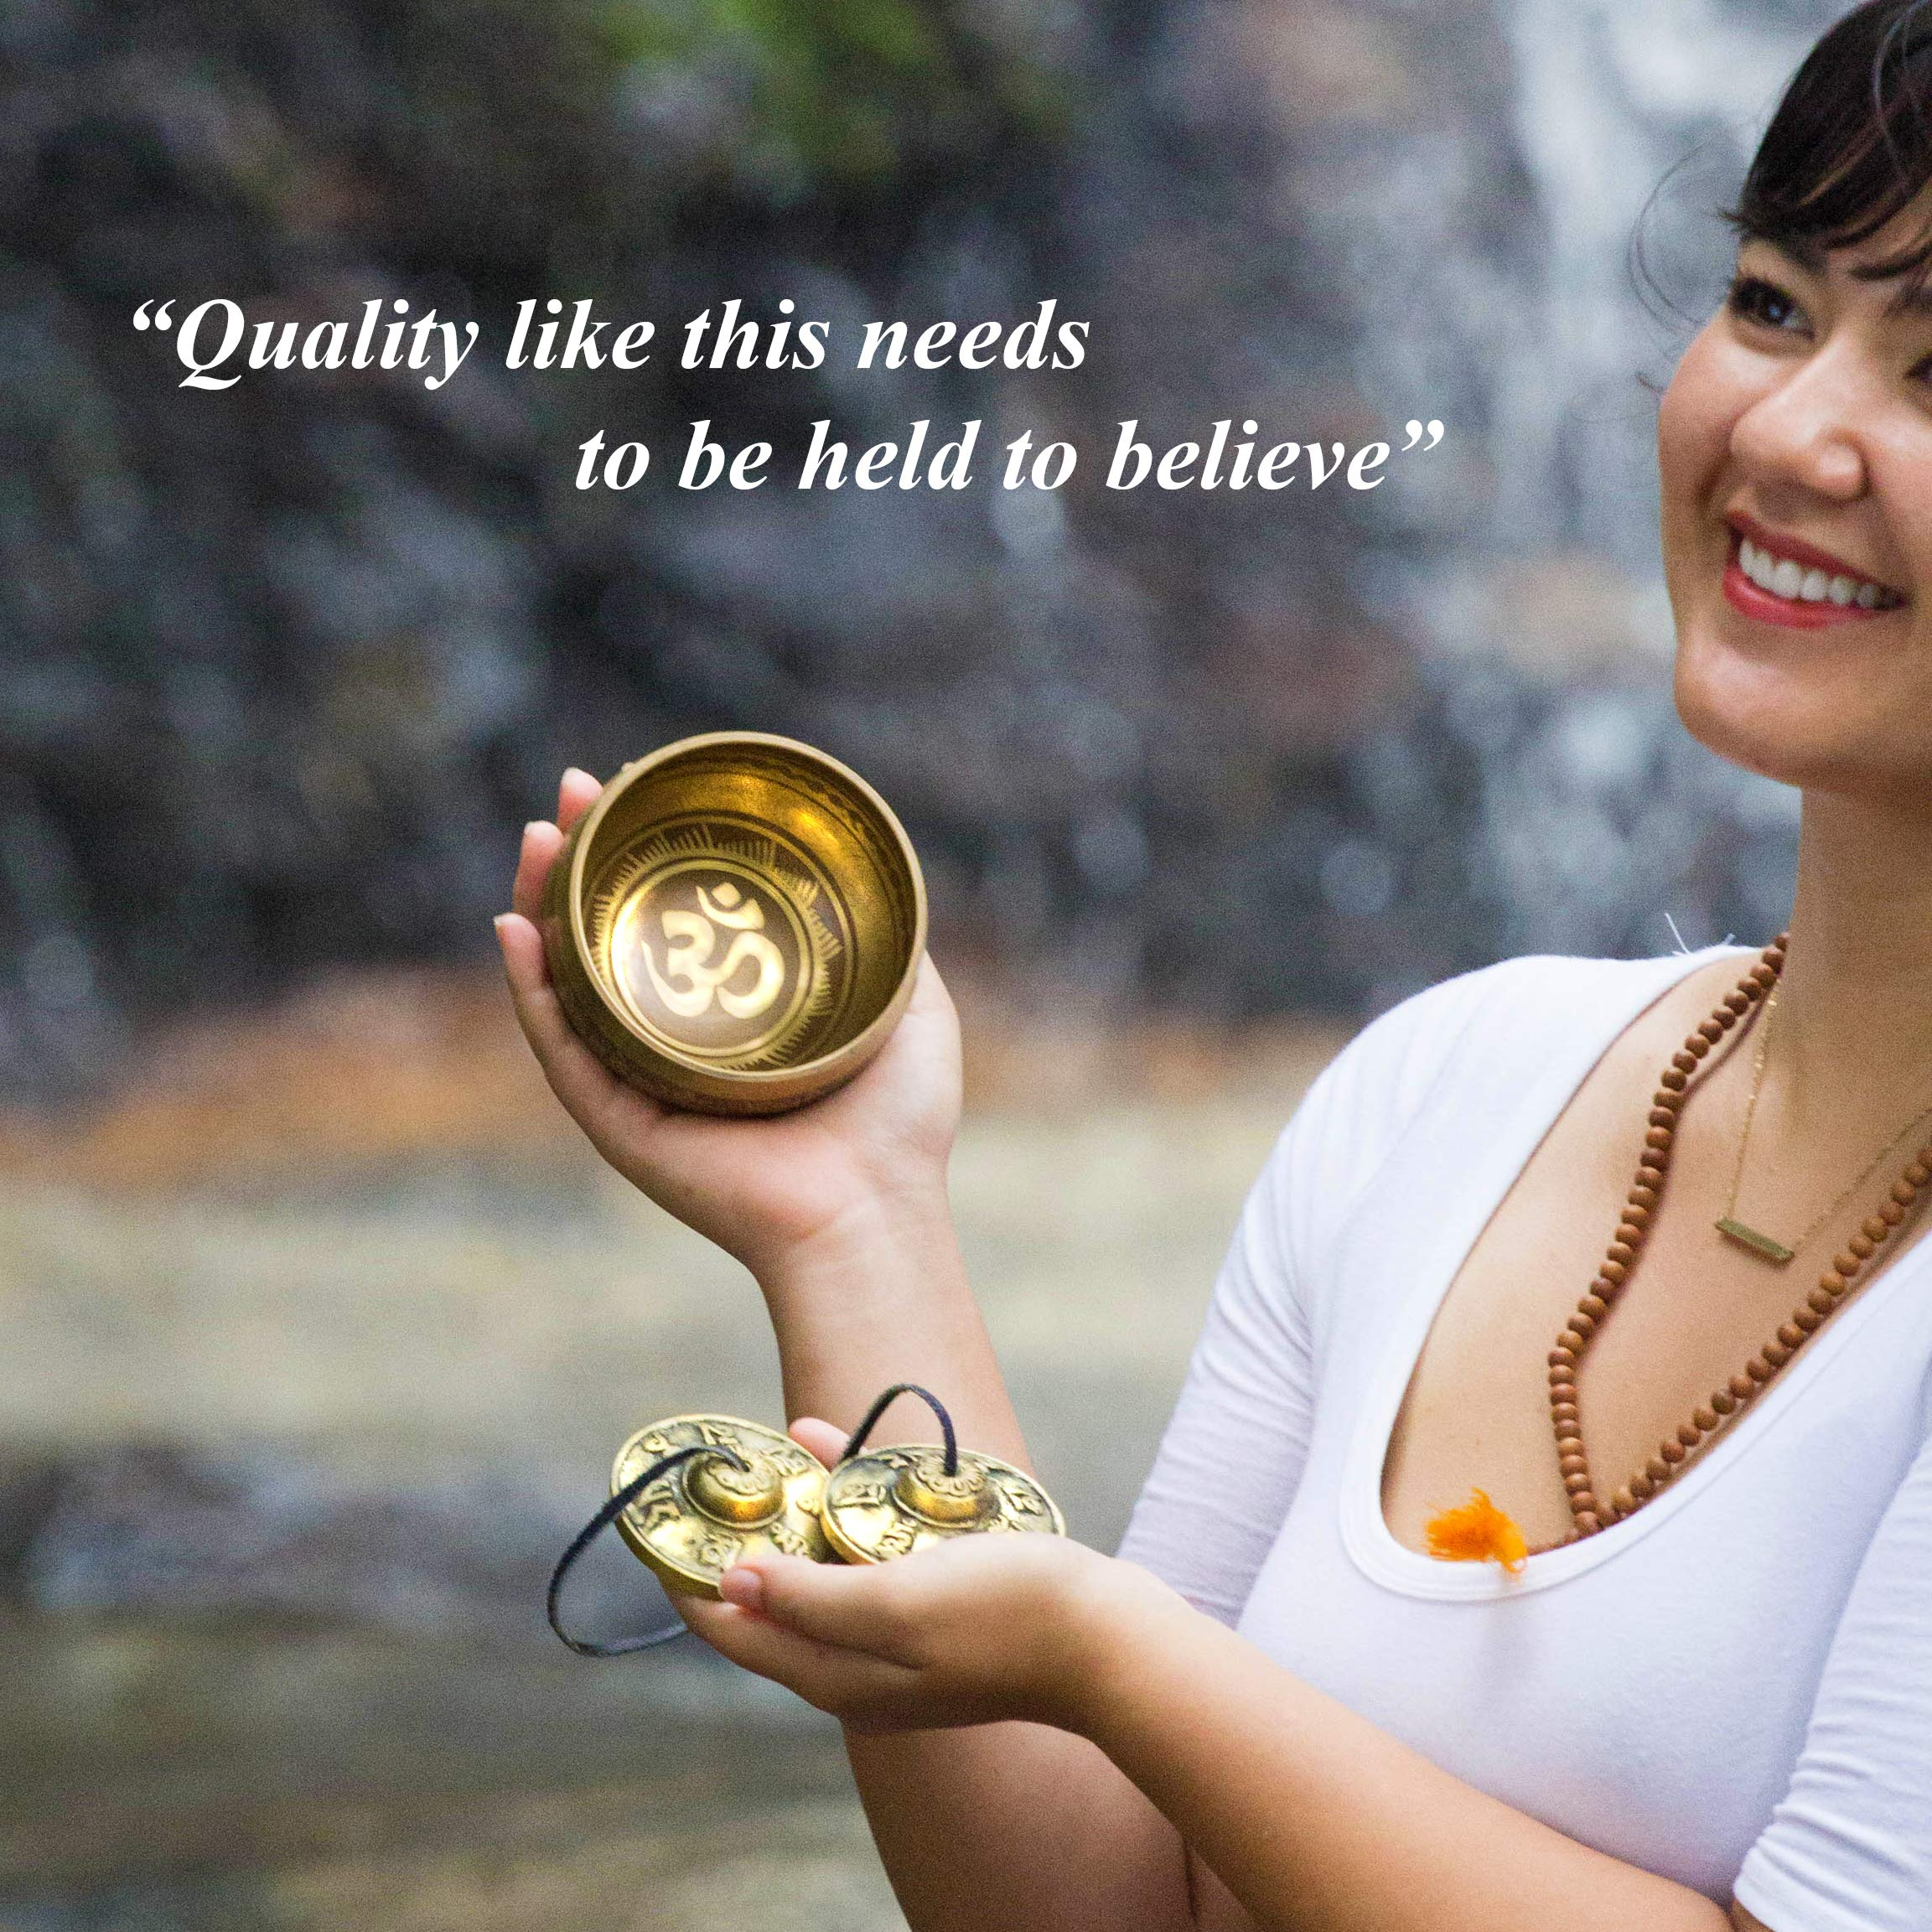 Tingsha Tibetan Singing Bowl Set by Zen Mind Design - with Tingsha Cymbals, Weighted Mallet, Handmade Cushion, Eco-Friendly Box and E-Book - for Yoga and Stress Relief Meditation by Zen Mind Design (Image #5)